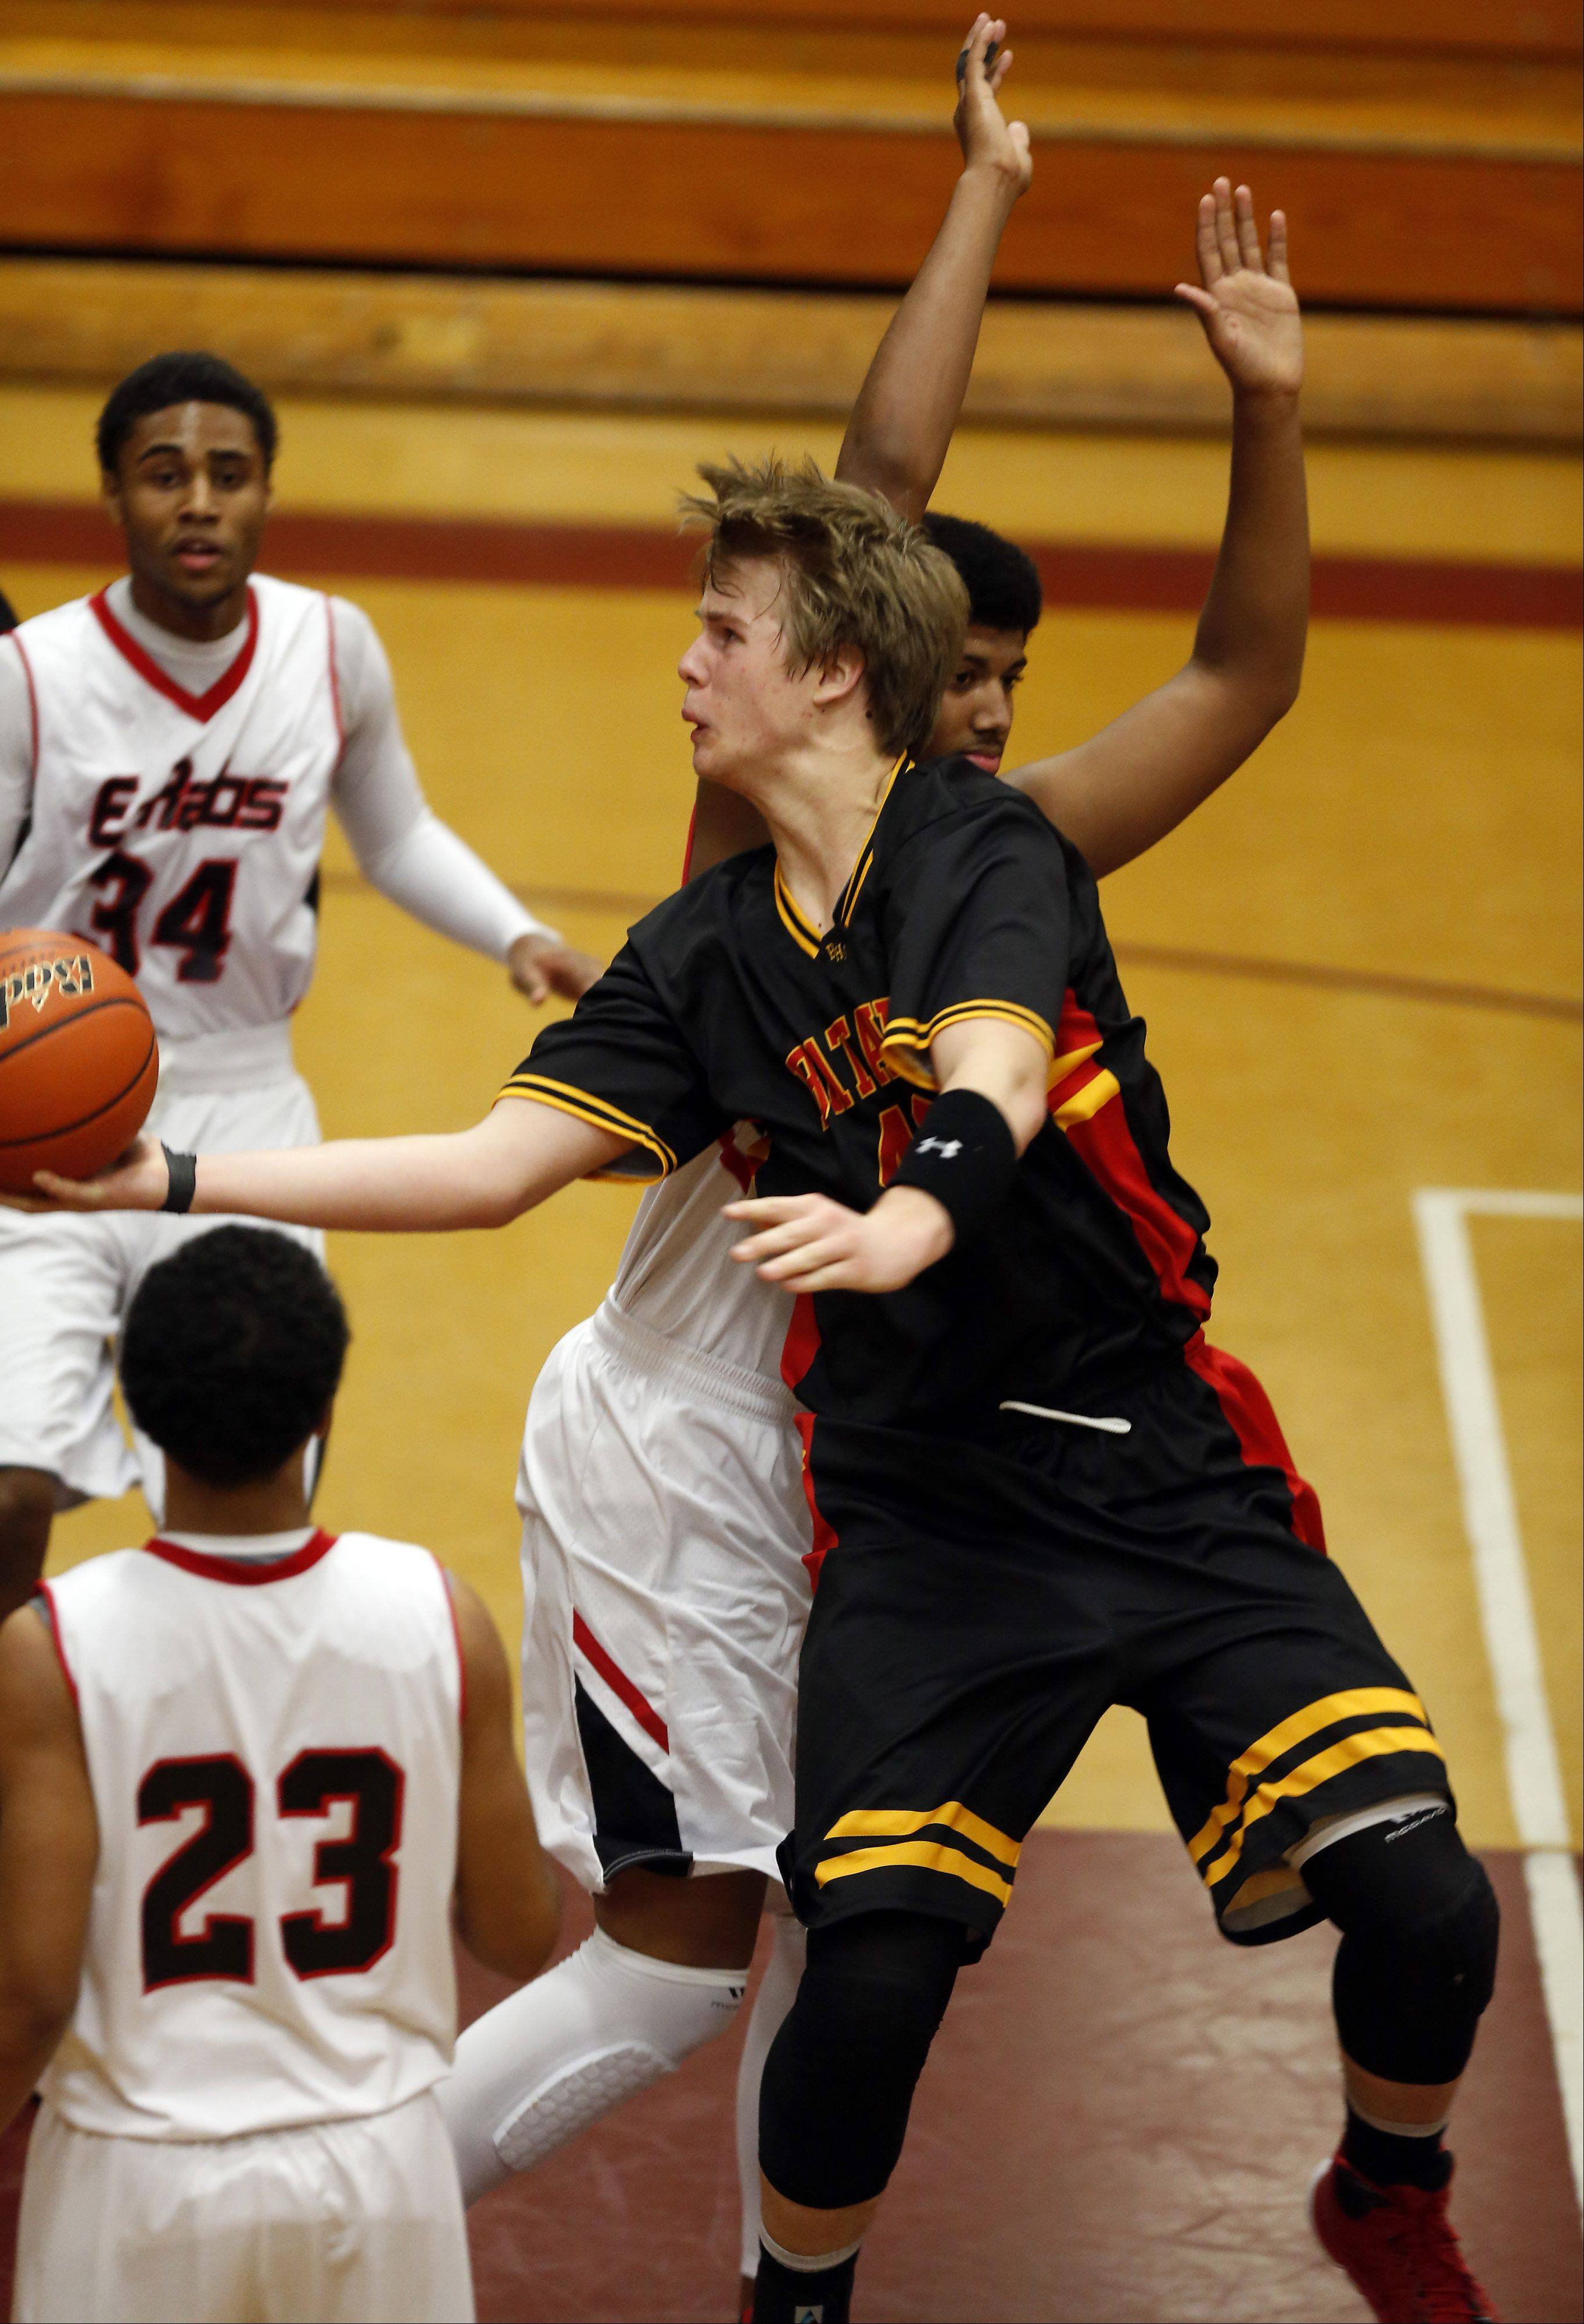 Batavia's Chasen Peez goes strong to the hoop past Rockford East's Bryant Nolan at the 39th Annual Elgin Boys Holiday Basketball Tournament at Elgin High School Saturday December 28, 2013.